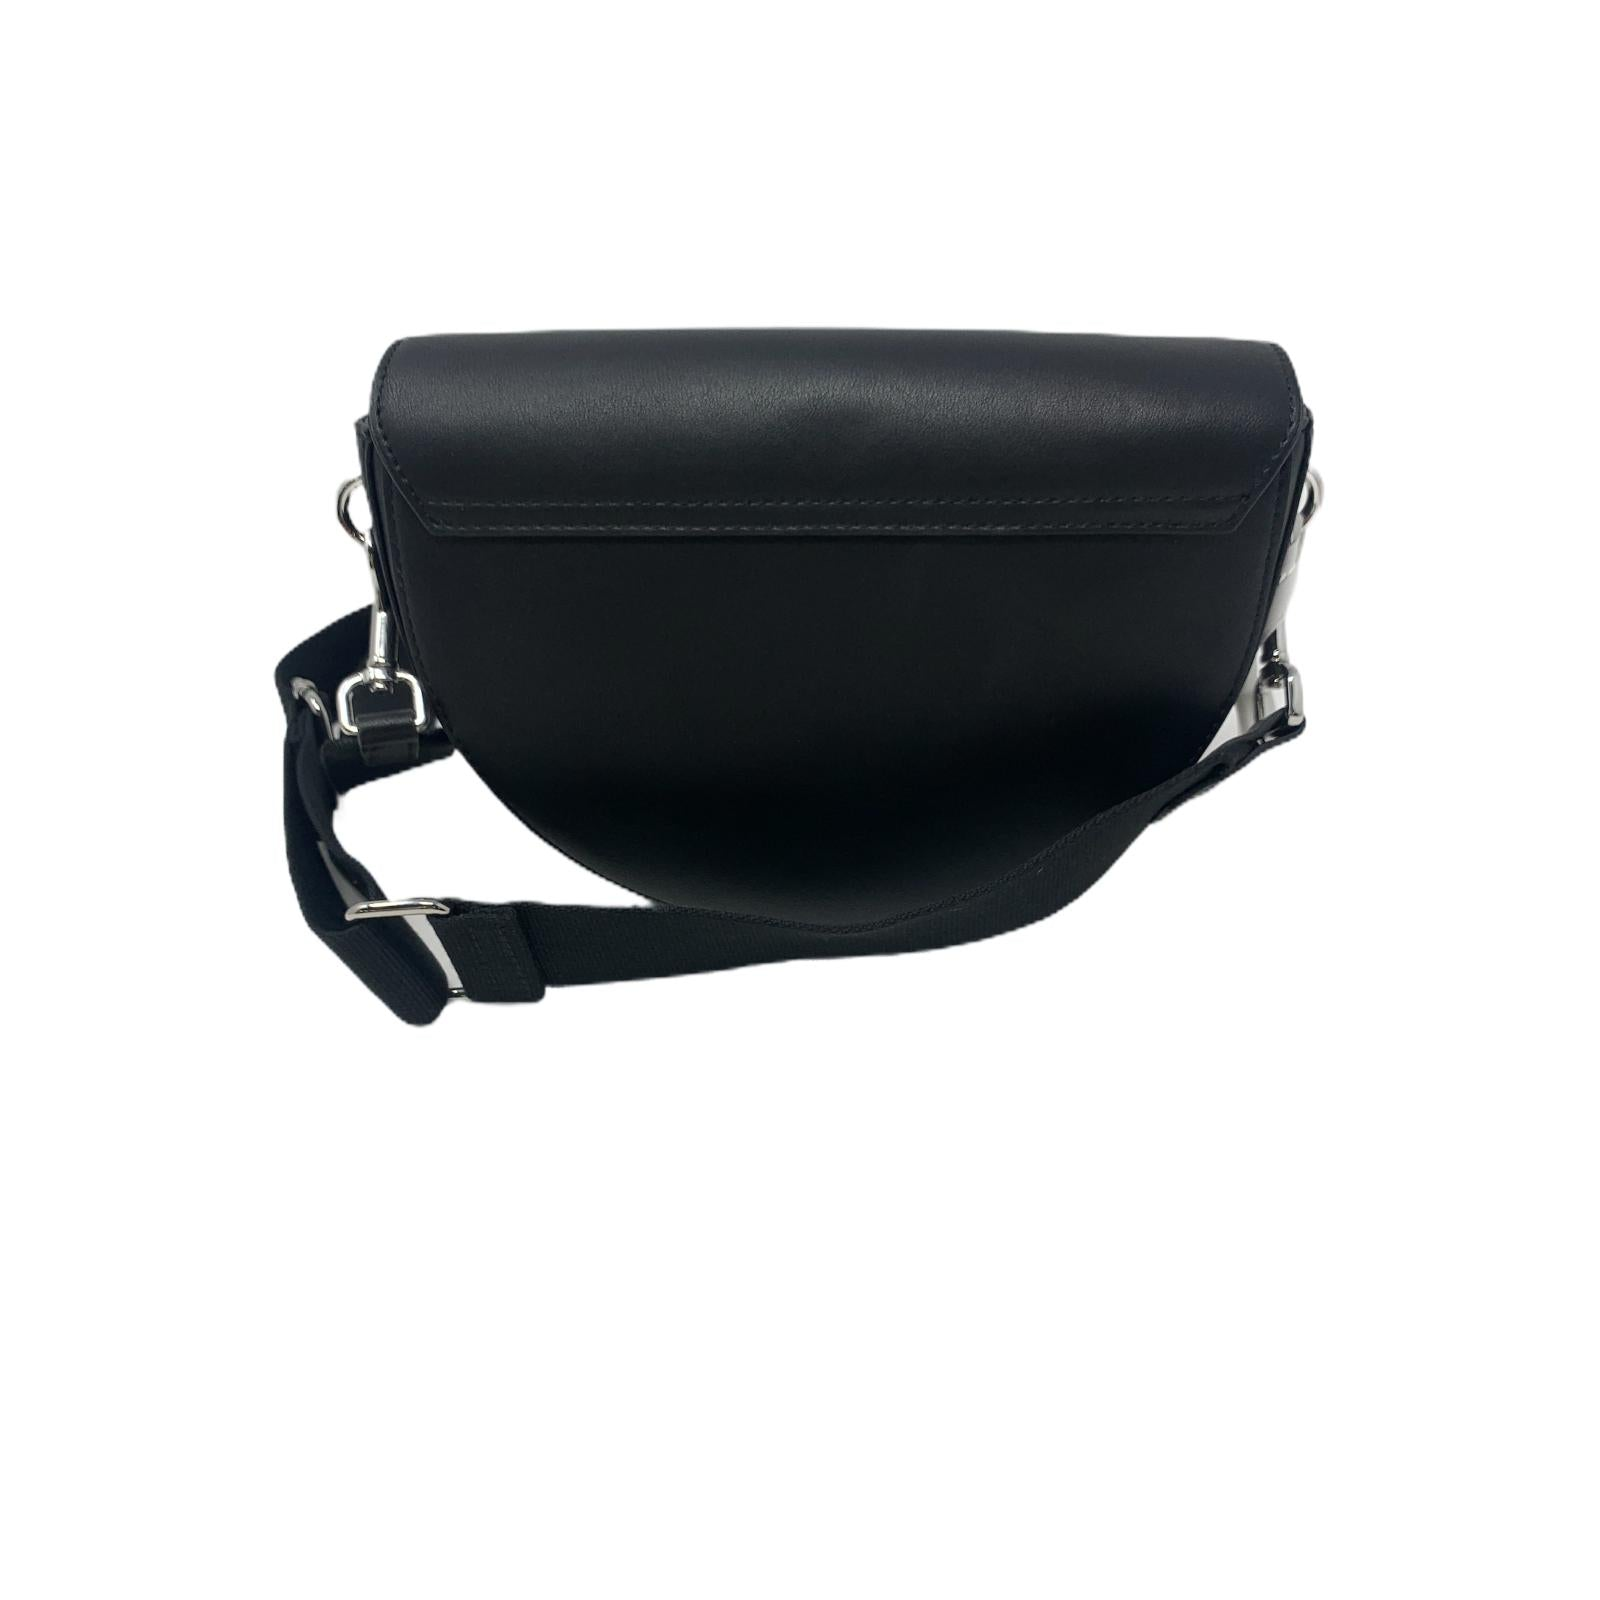 Borsa Tommy Hilfiger Staple Saddle Black